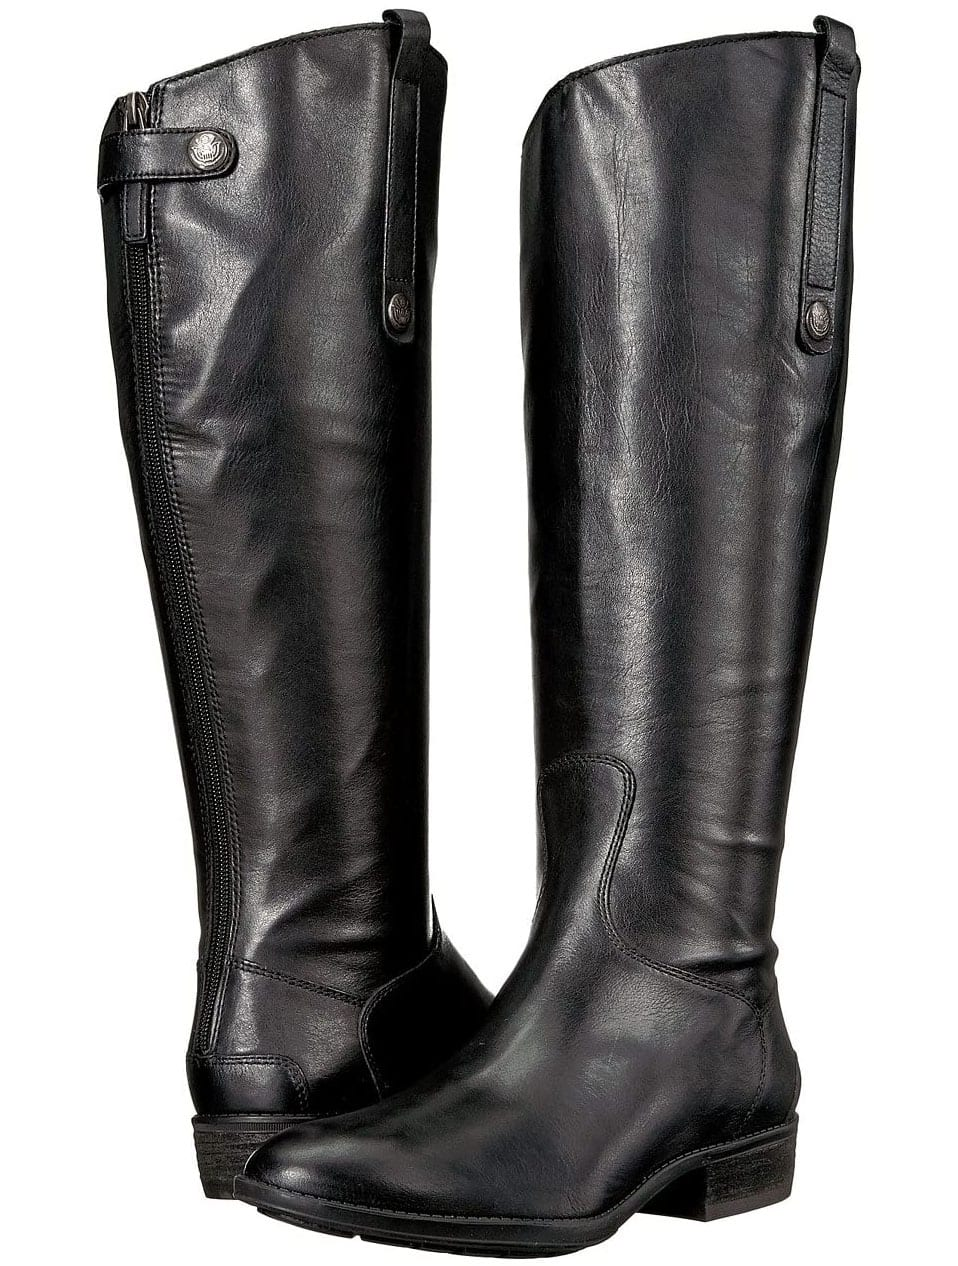 For the women who need extra legroom, Sam Edelman also offers a wide calf version of the Penny boots